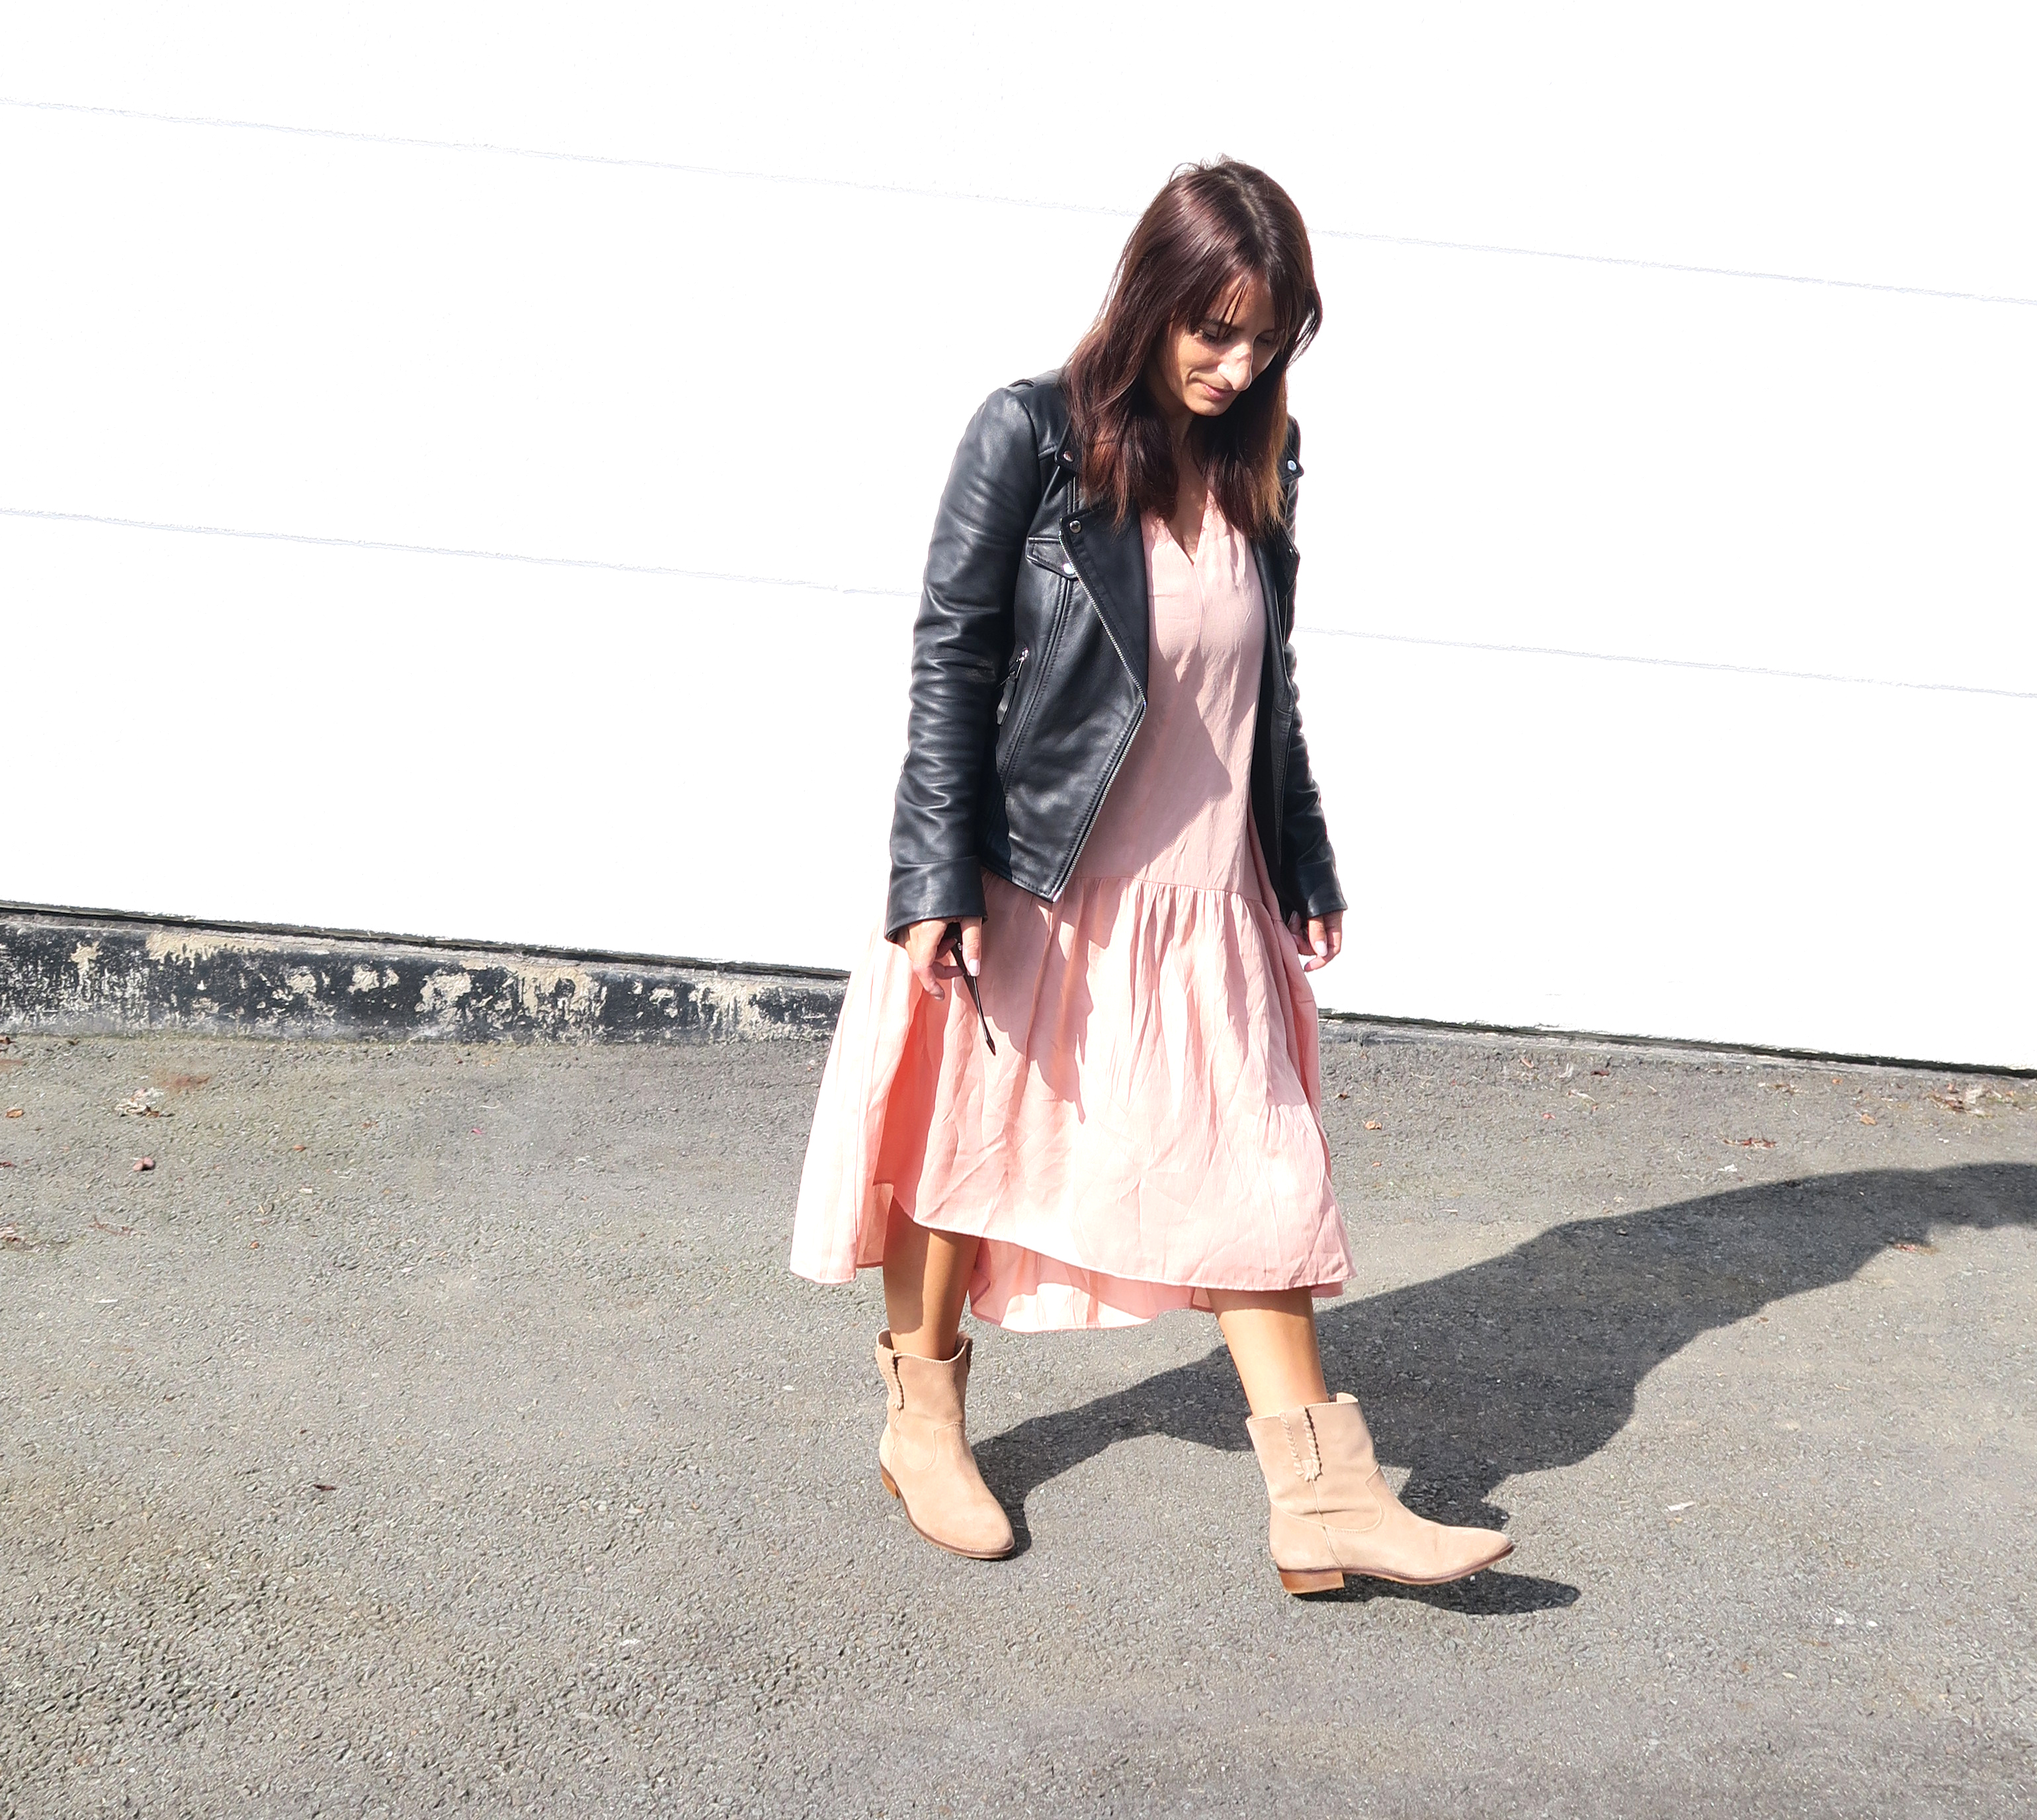 Modesalat-blogger-streetstyle-leather-bloggerstyle-ruffles-dress-3